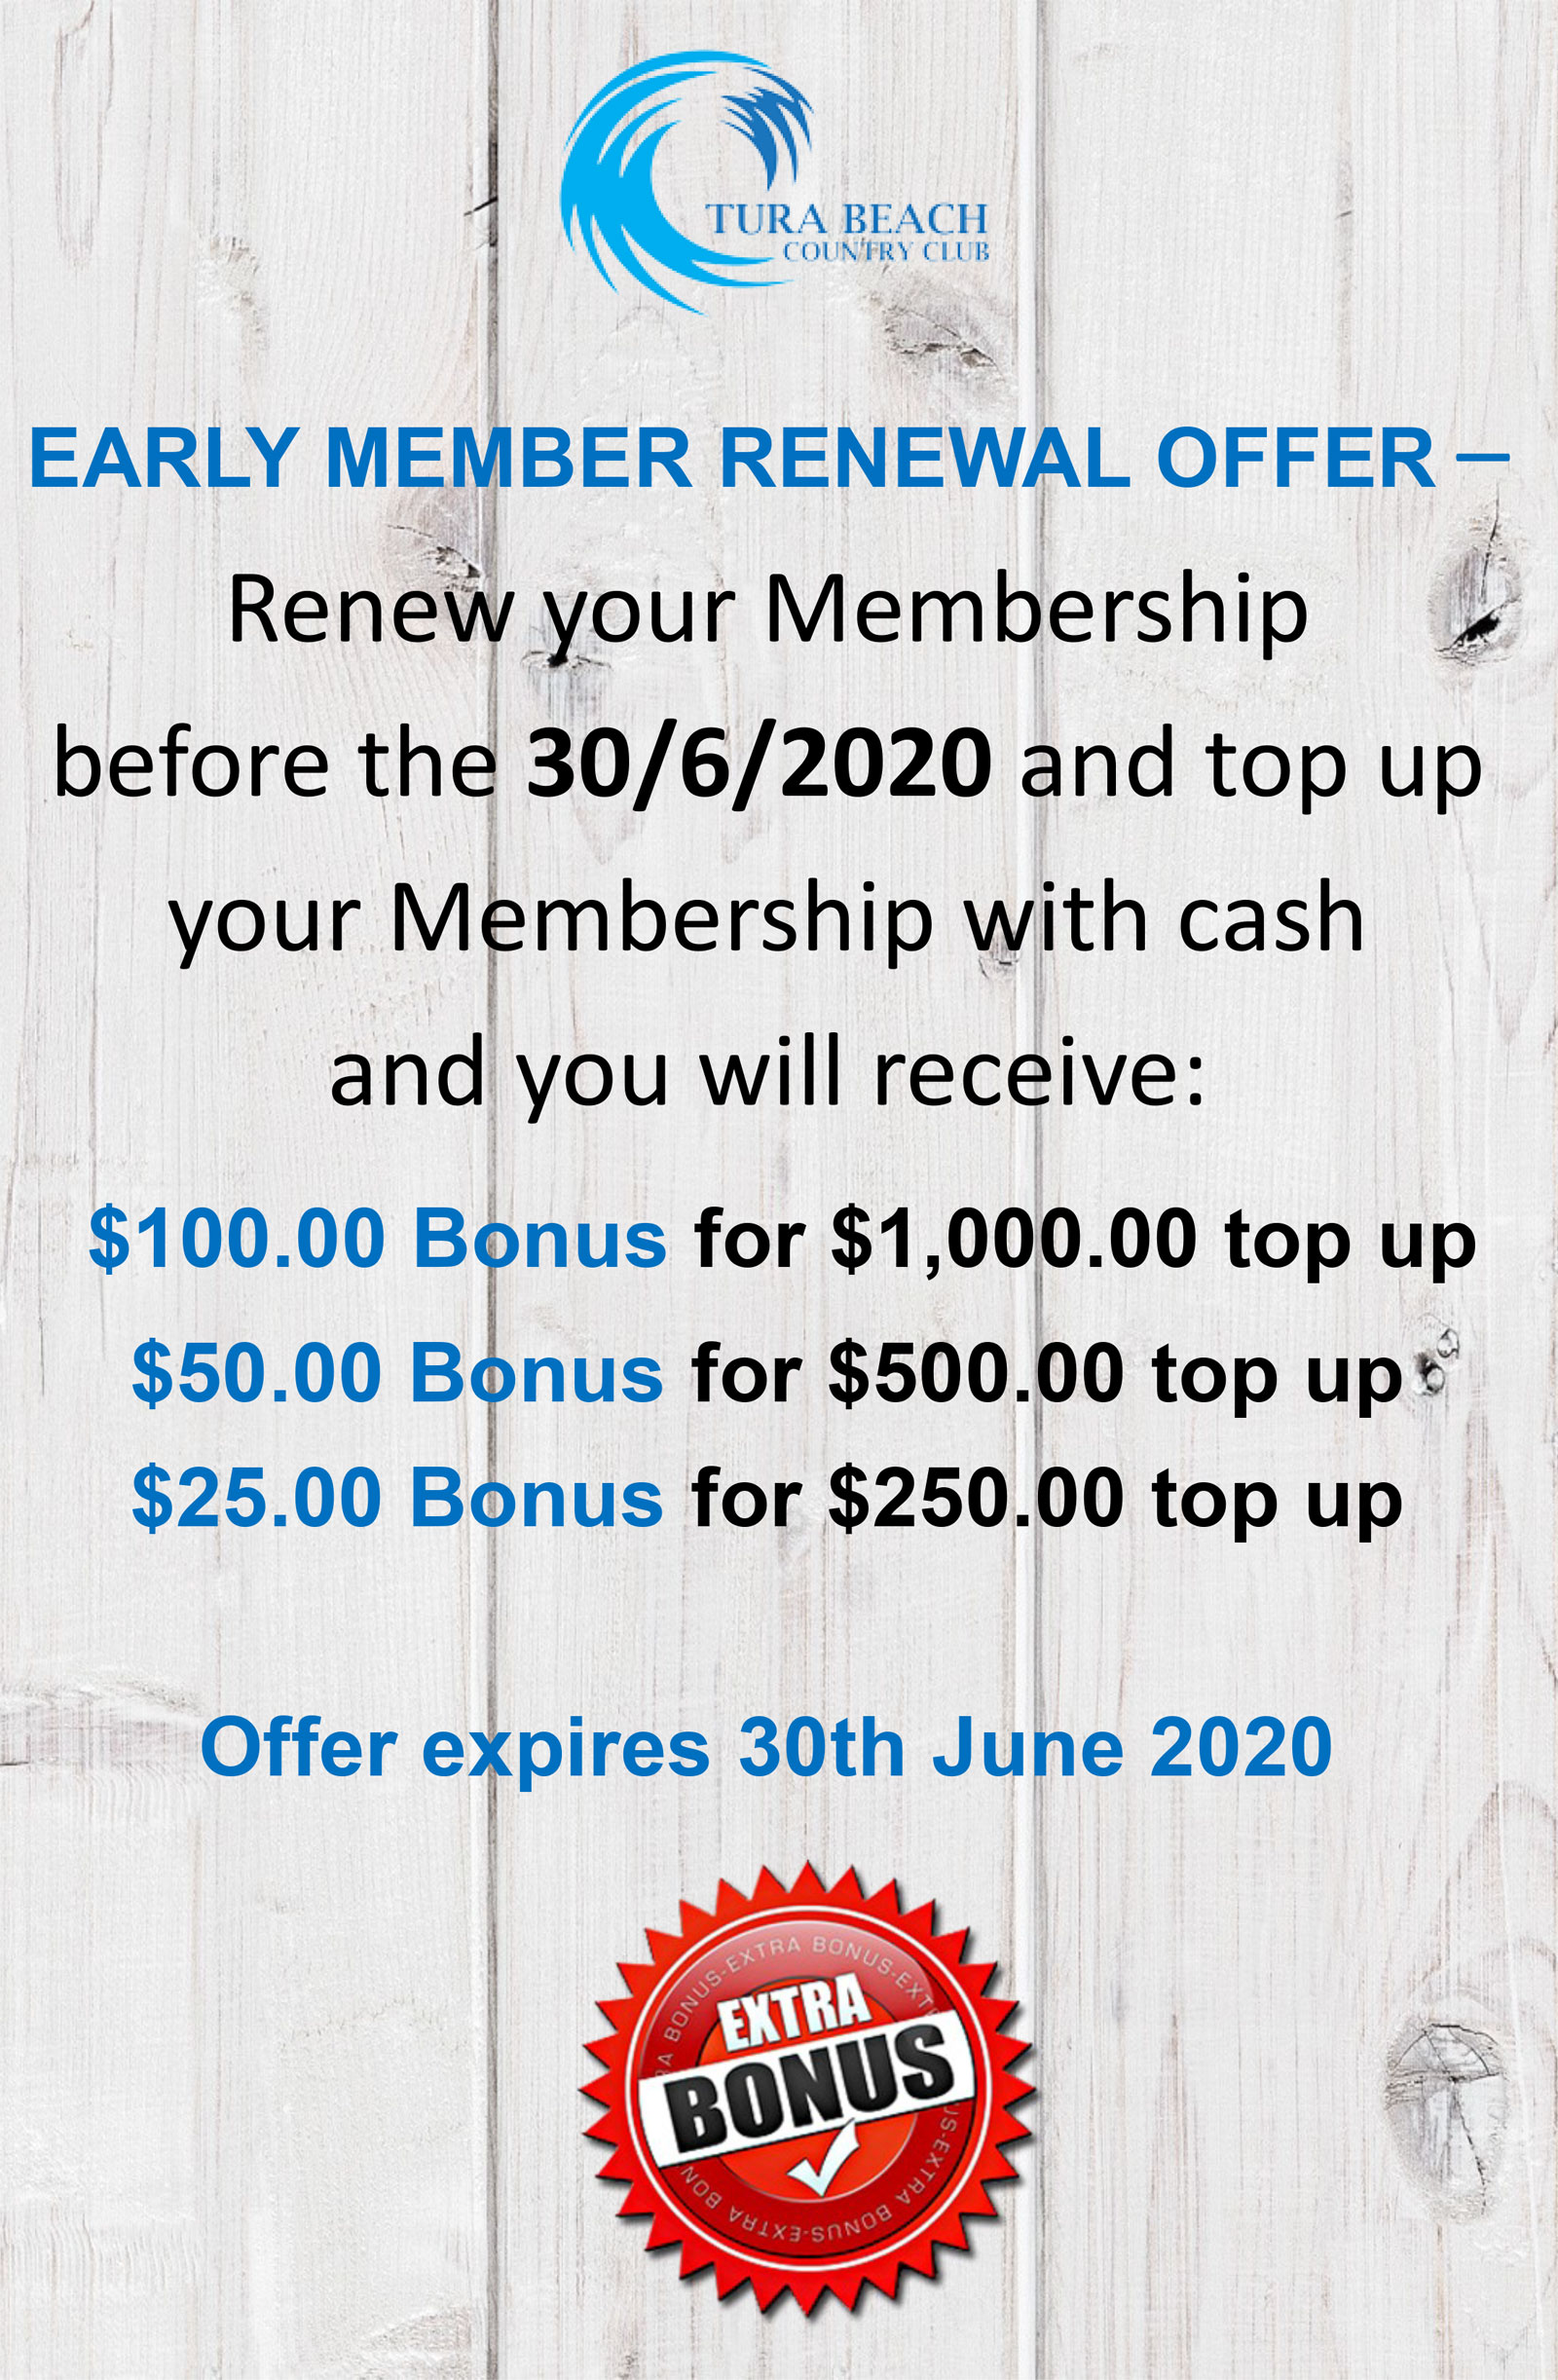 early member renewal offer tura beach country clulb